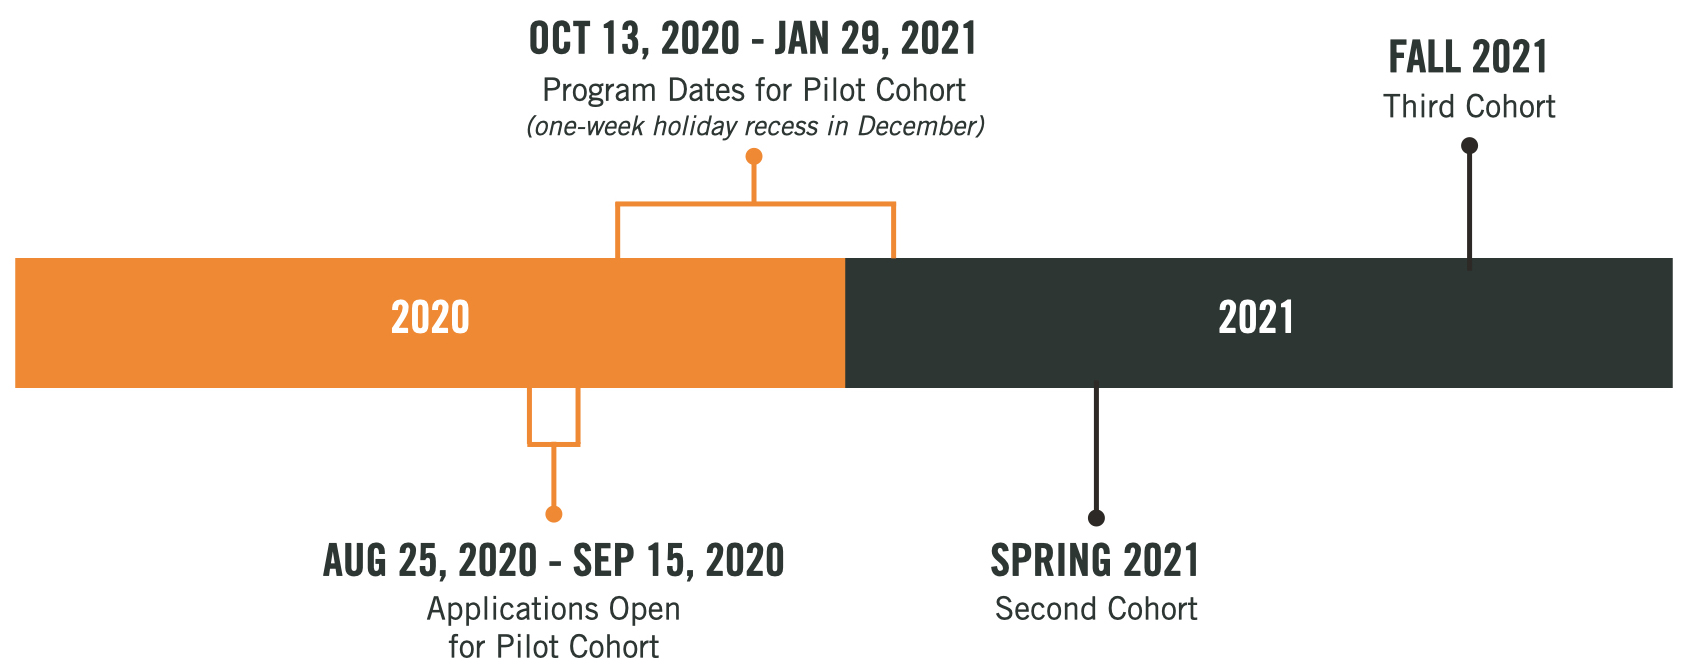 This is a line graph of the program's timeline. Applications for the first cohort opens on August 25, 2020 and ends on September 15, 2020. The program dates run from October 13, 2020 until January 29, 2021. The program will take a one-week holiday recess at the end of December. There will be two more cohorts in 2021: one in the spring and one in the fall.